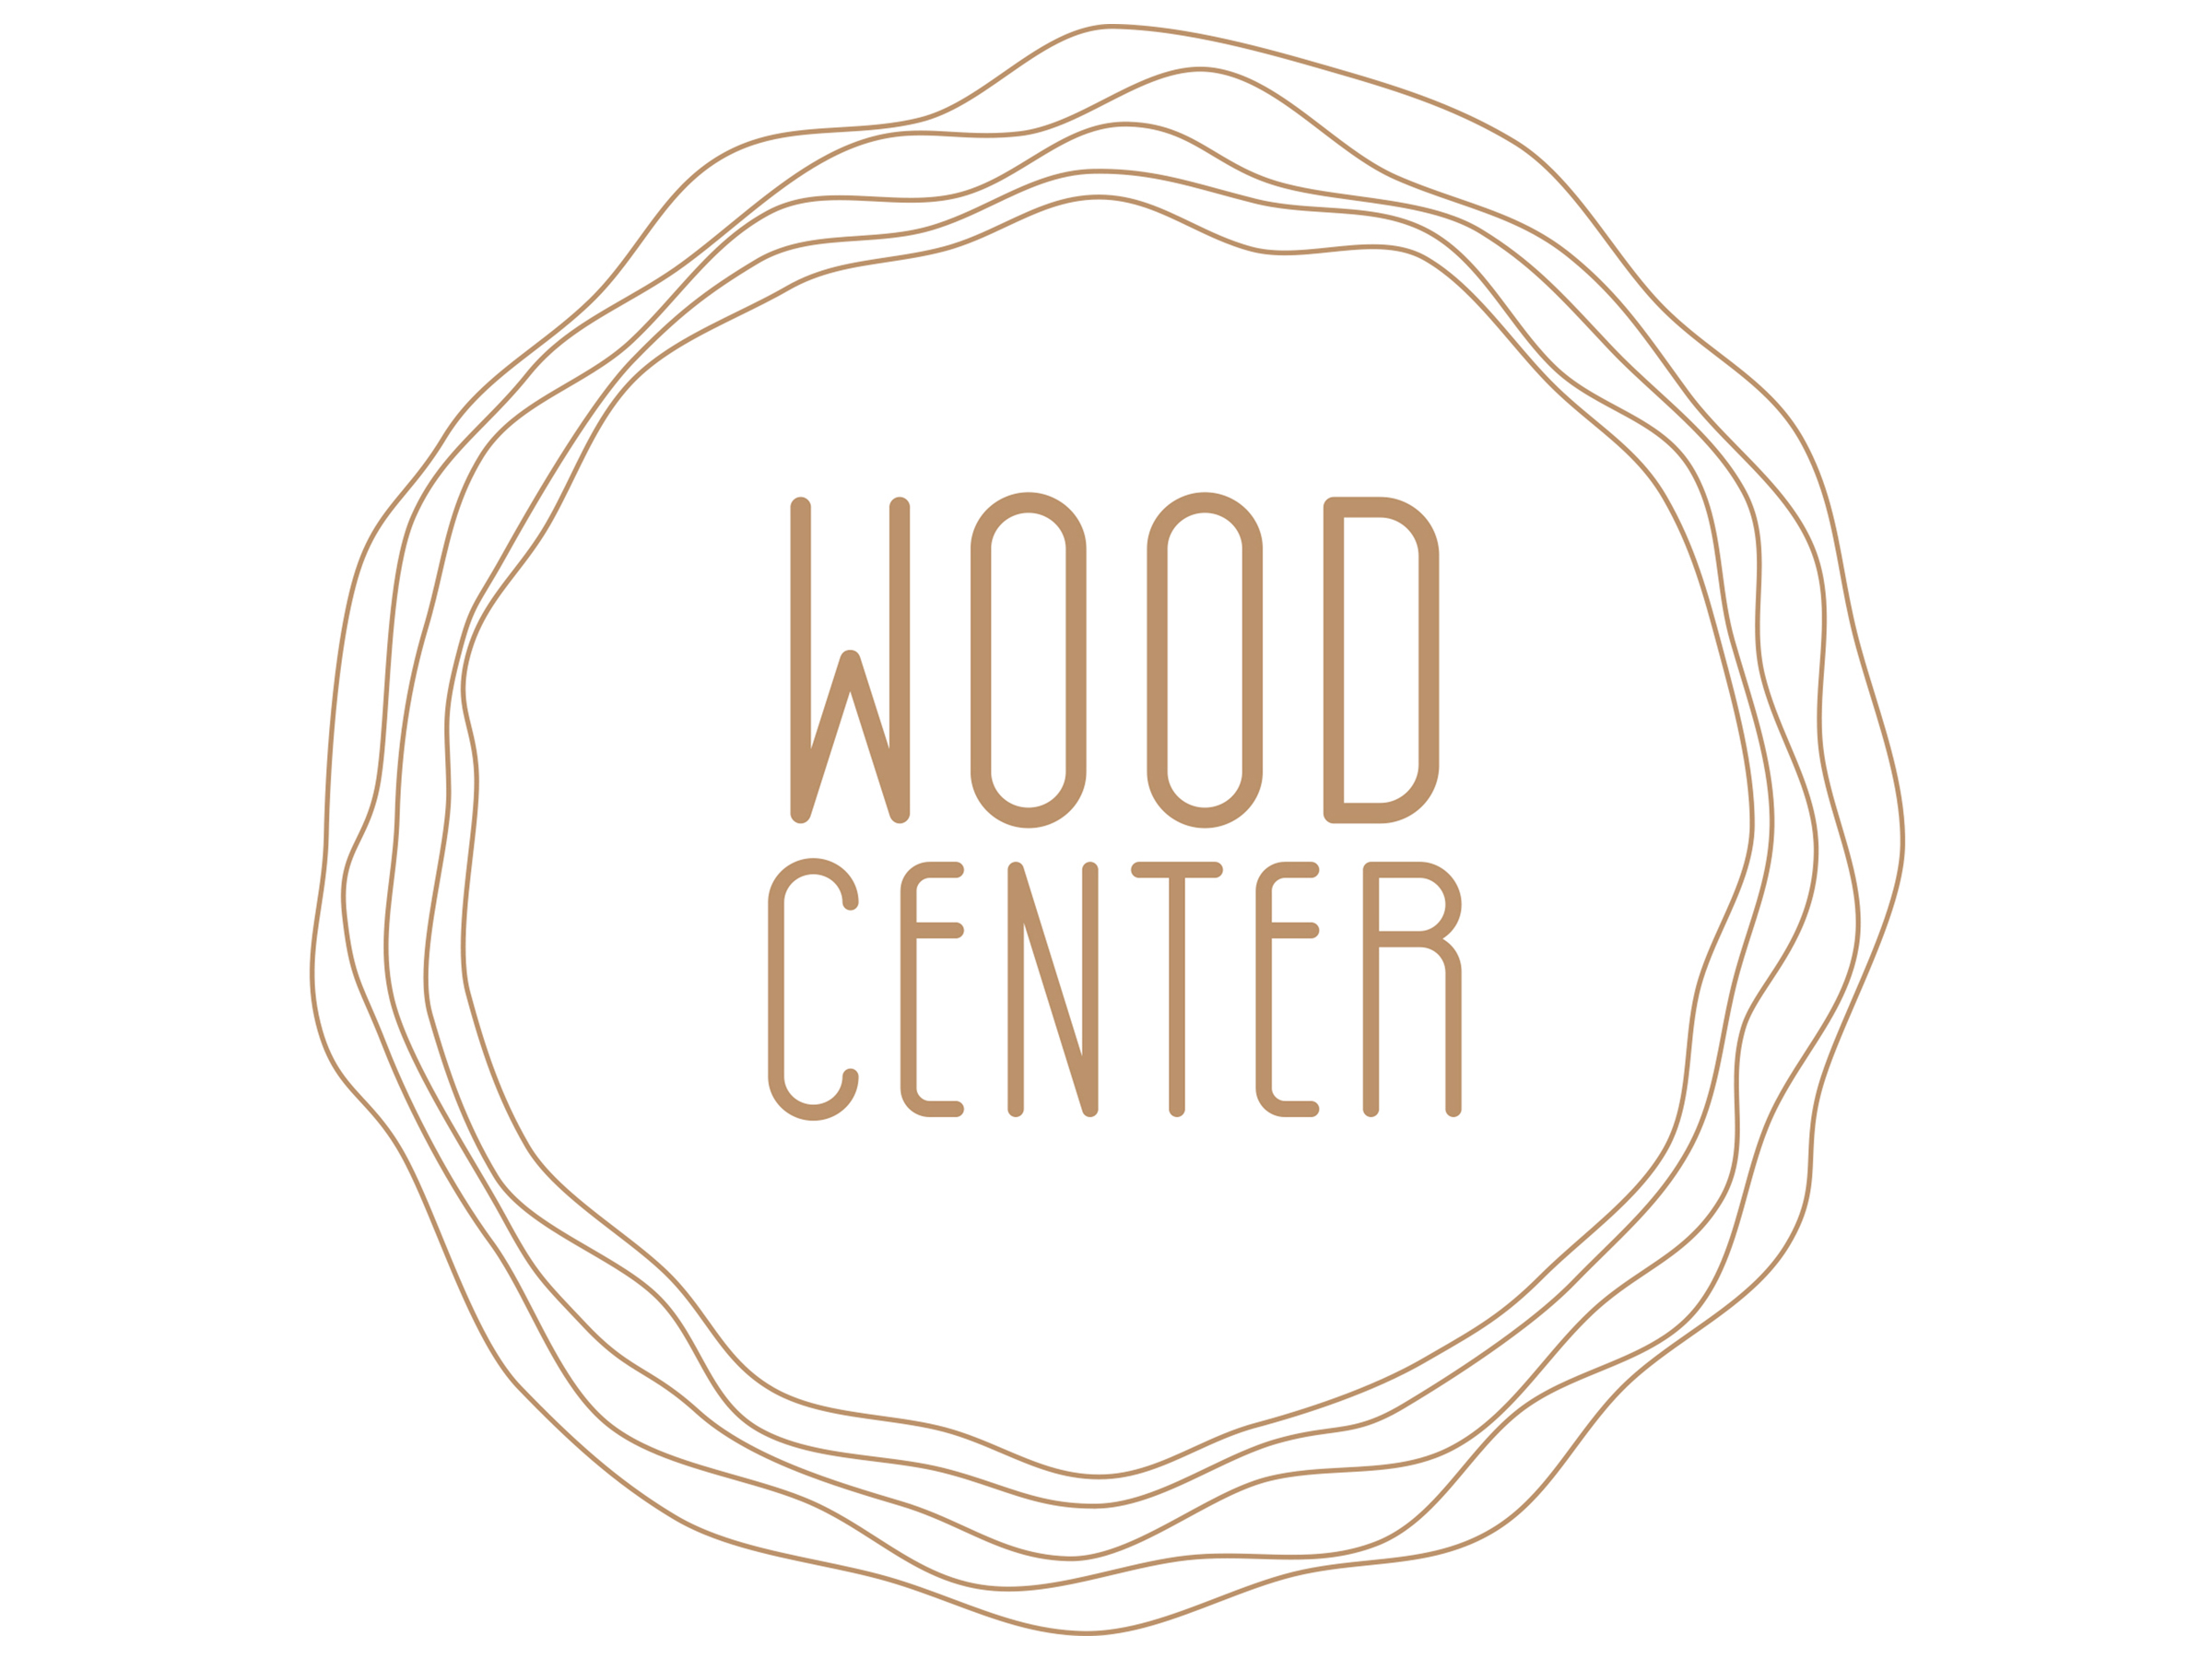 Inteligencia Marketing - WOOD CENTER – NOVA IDENTIDADE - Untitled-1